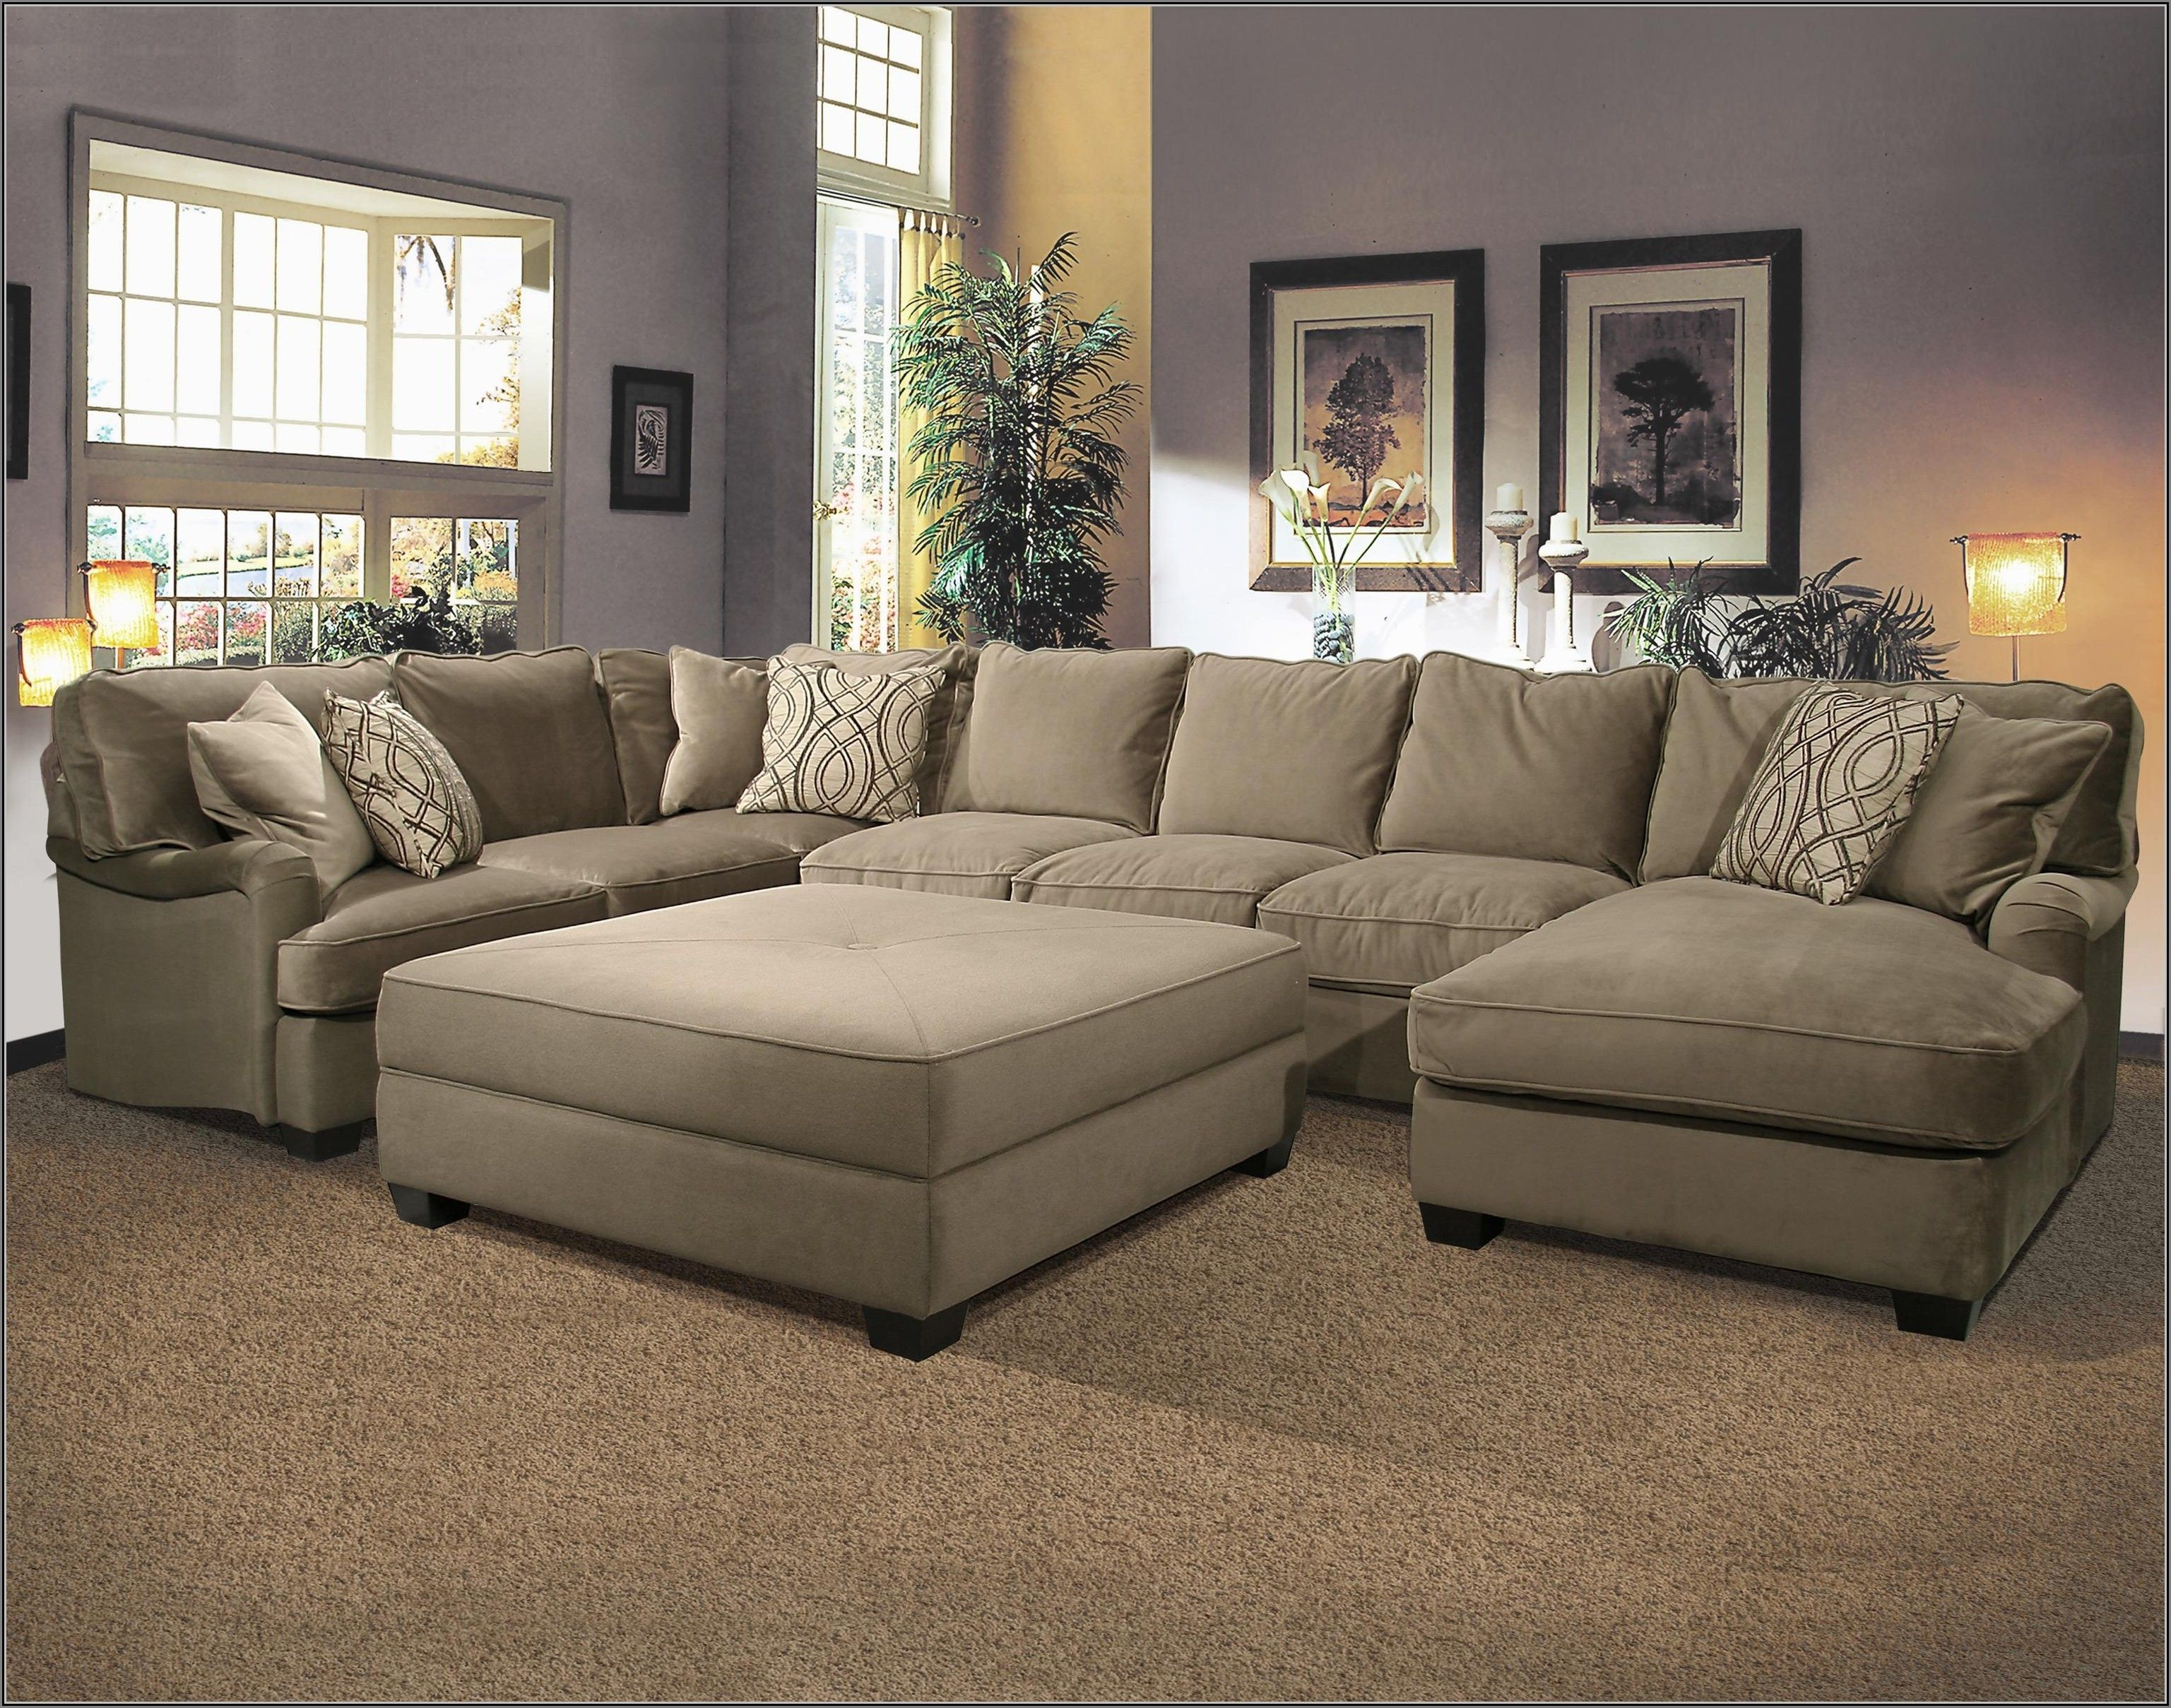 Browse Gorgeous Choices Relating To Couch With Huge Ottoman Couches Large Ottomans L Shaped Also Various Sofa Models And